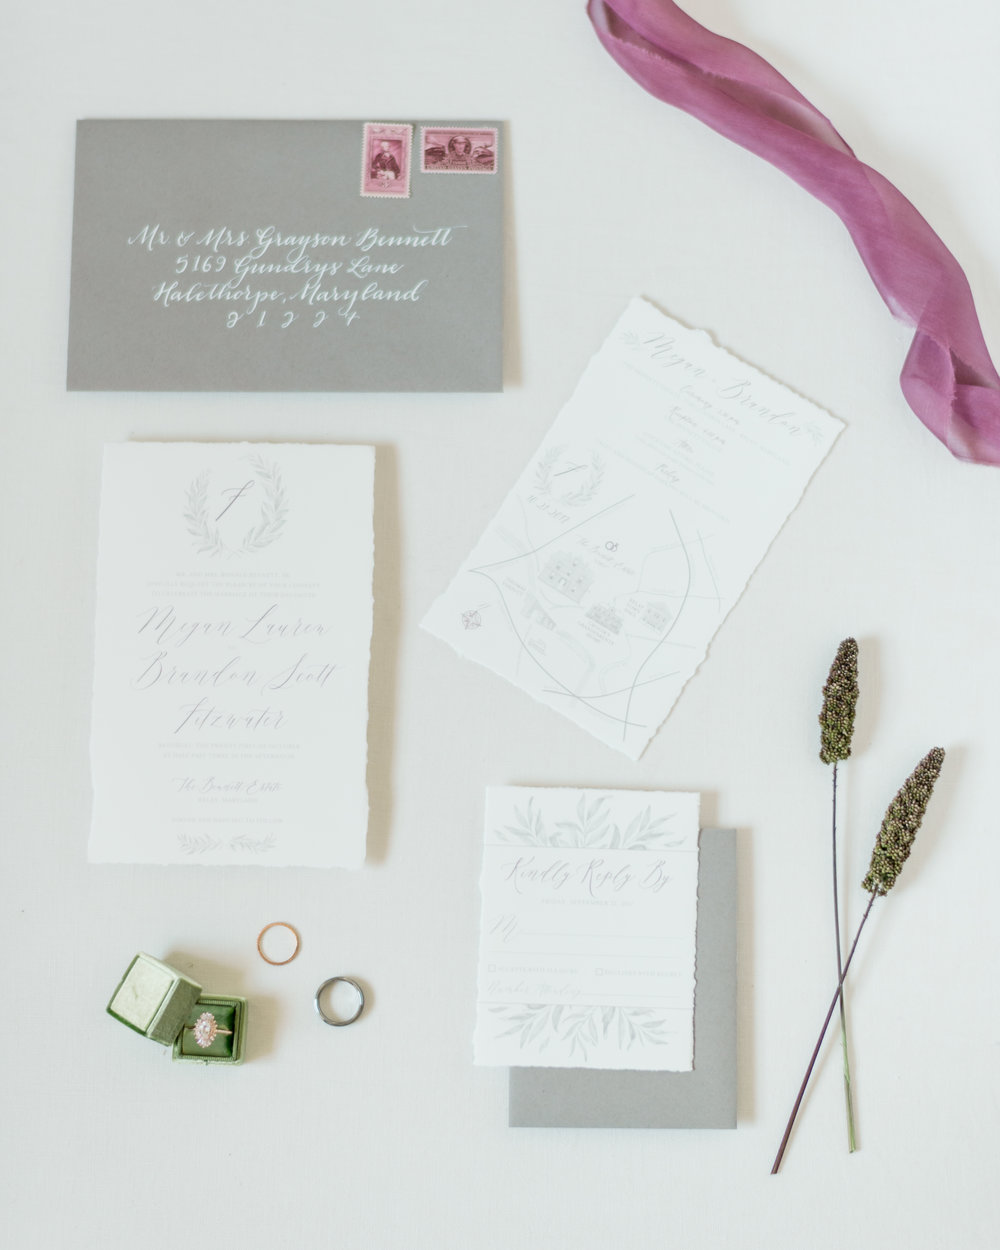 Invitation Suite Design: Susan Wilson Designs. Envelope Calligraphy:  Allison Dee Calligraphy . Photo Credit:  Lauren R Swann Photography .